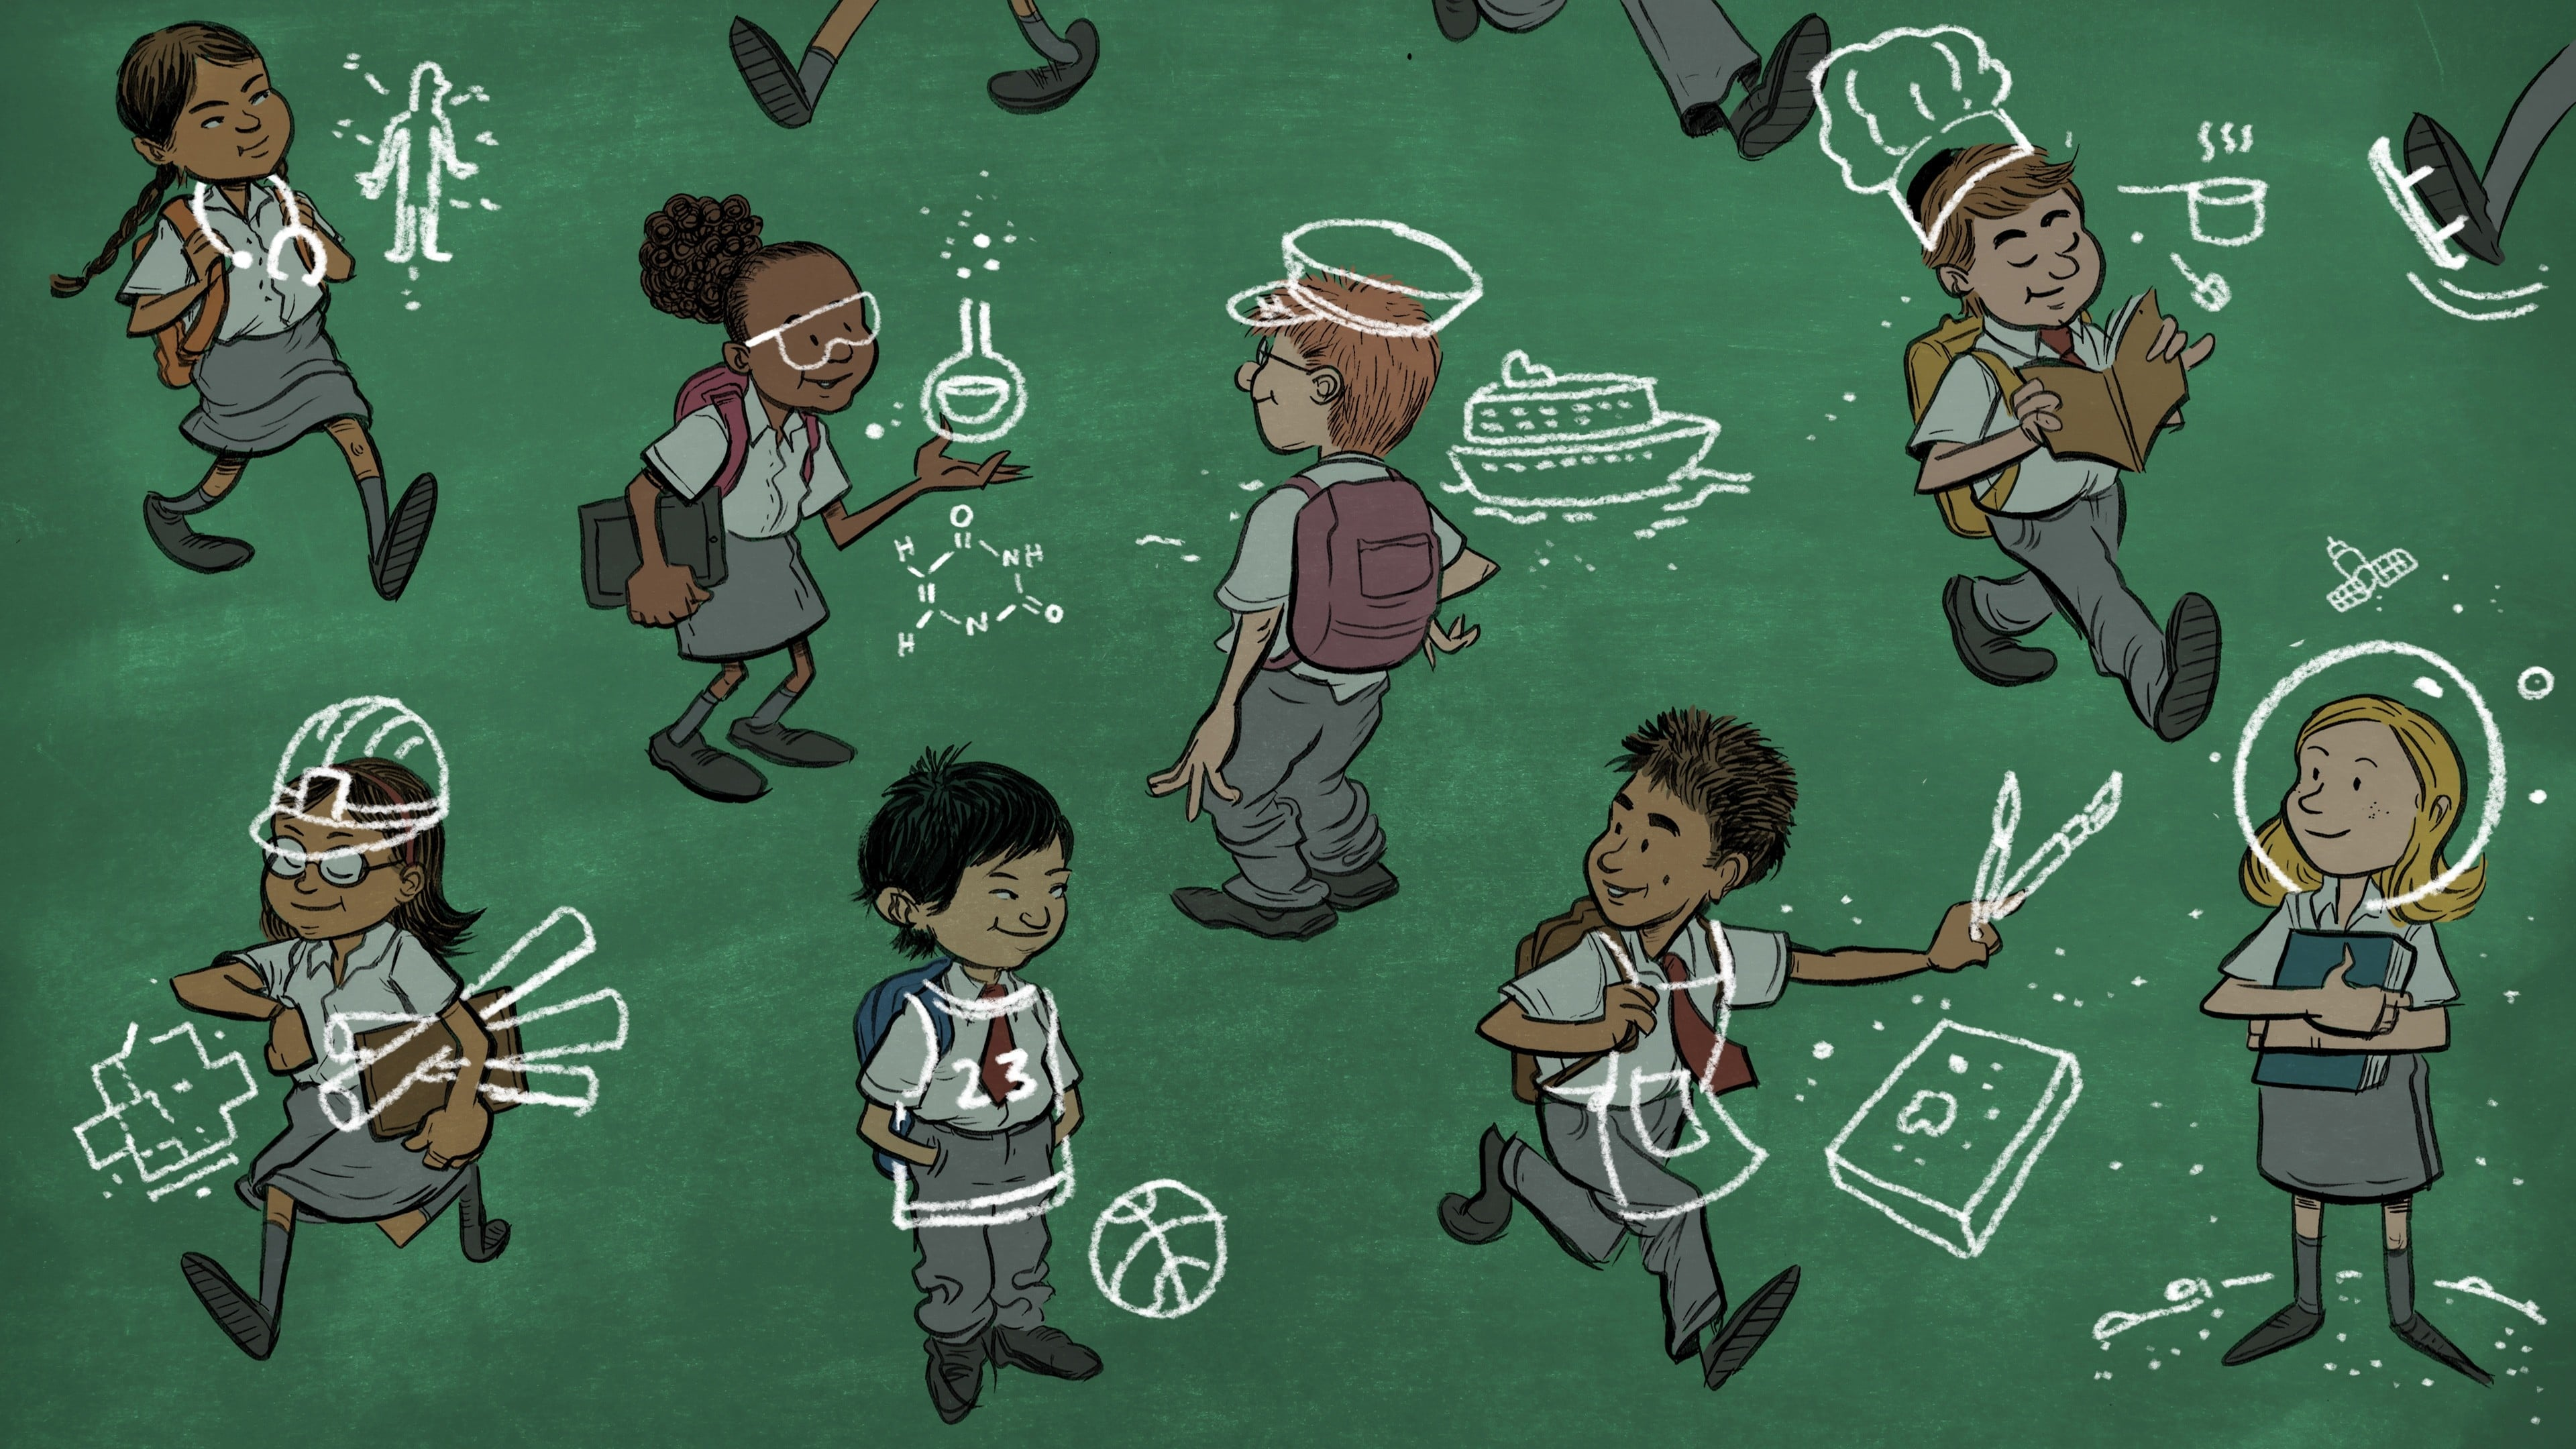 illustration of private school students that have different dream professions